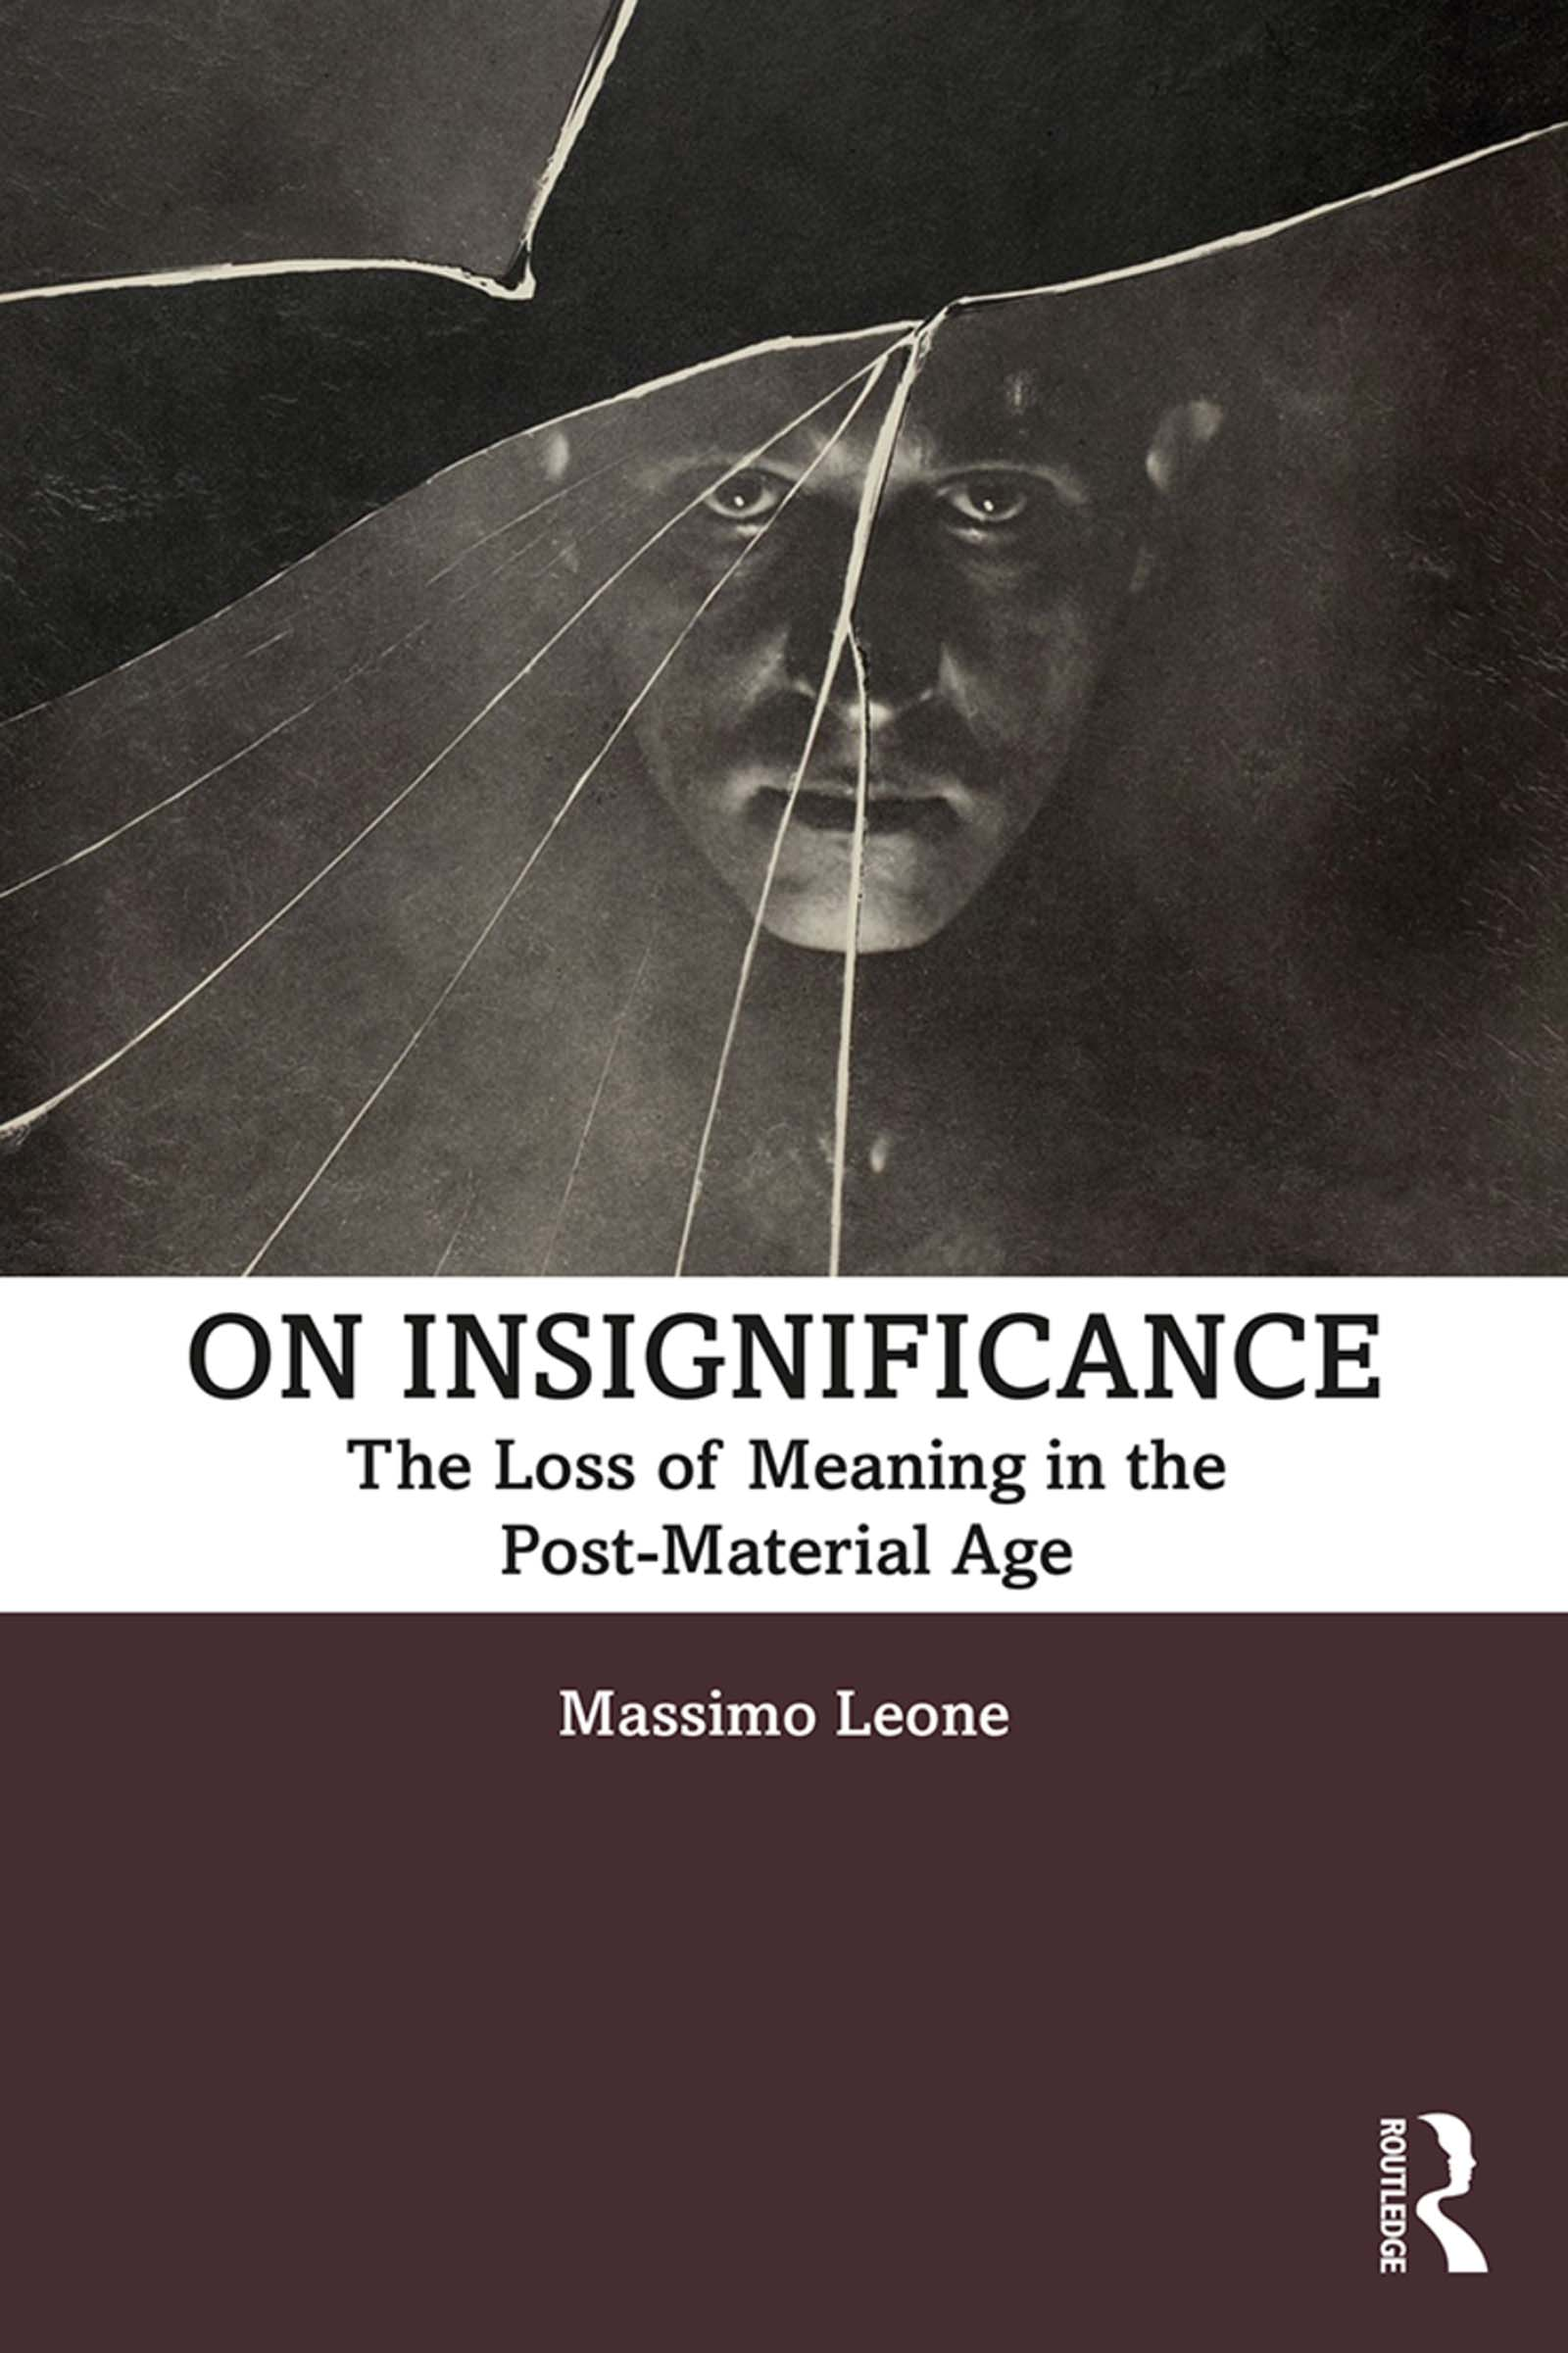 On Insignificance: The Loss of Meaning in the Post-Material Age book cover